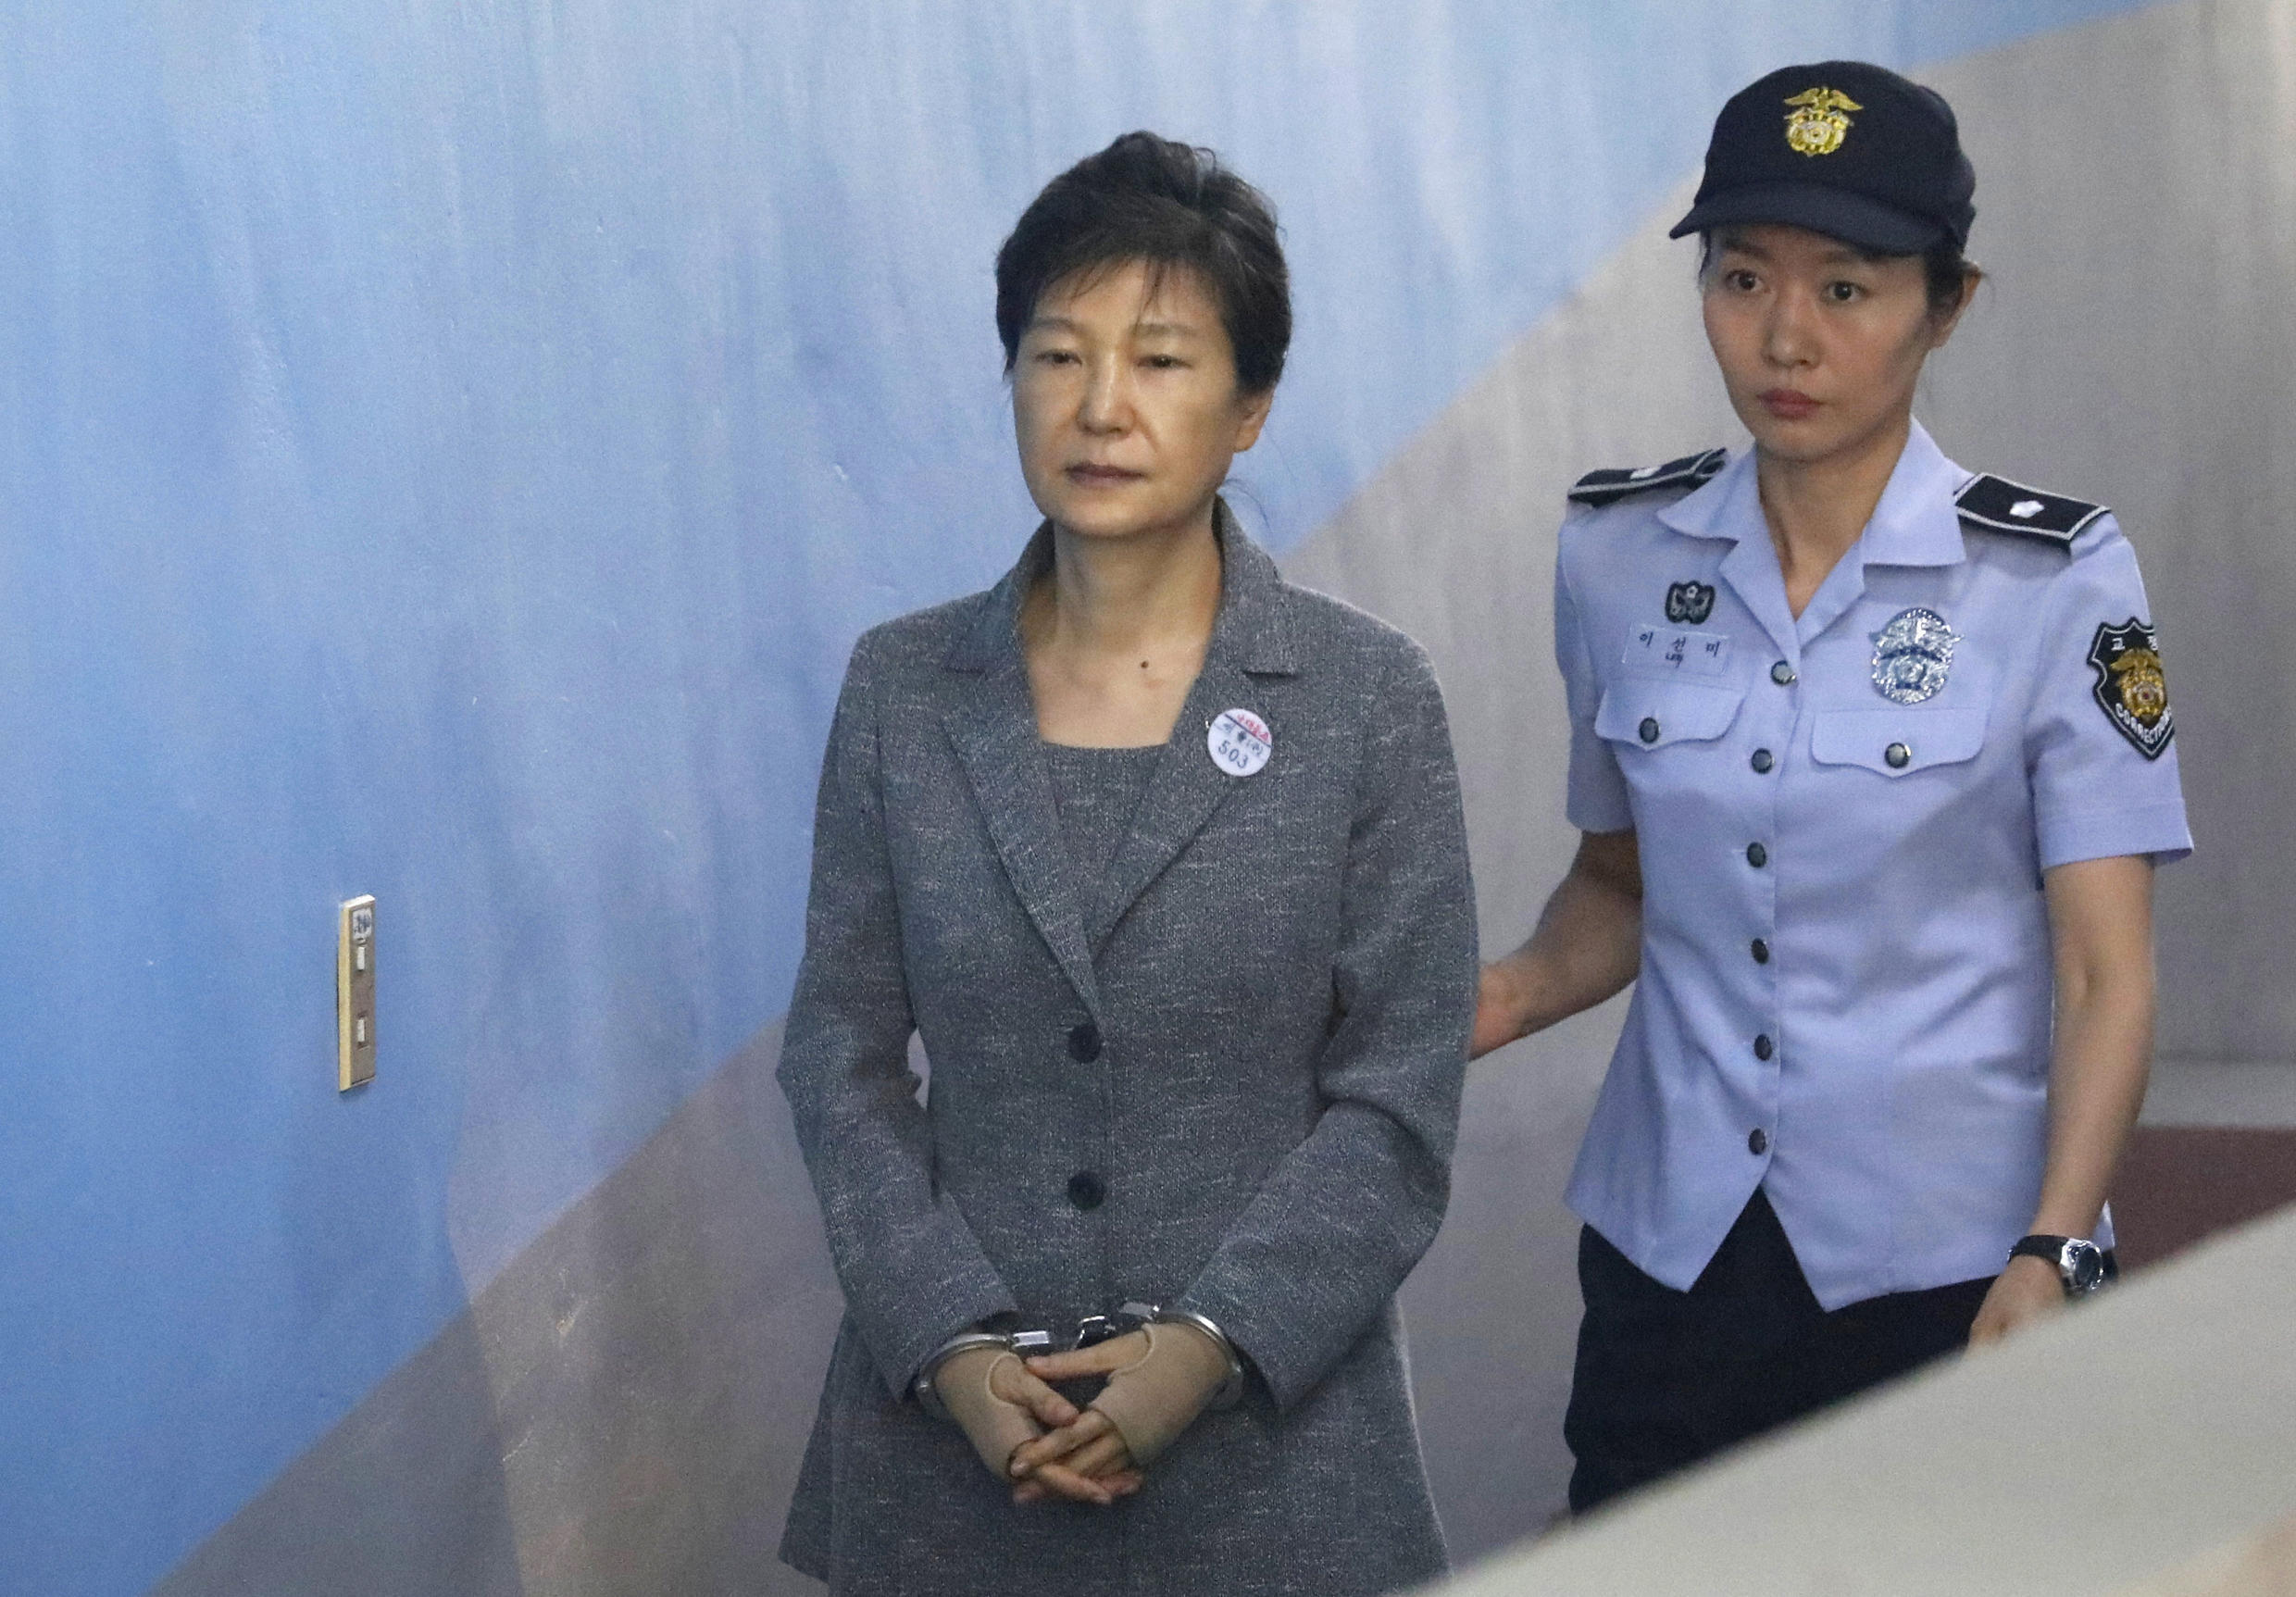 ParkGeun-hye was convicted in 2018 of bribery and abuse of power